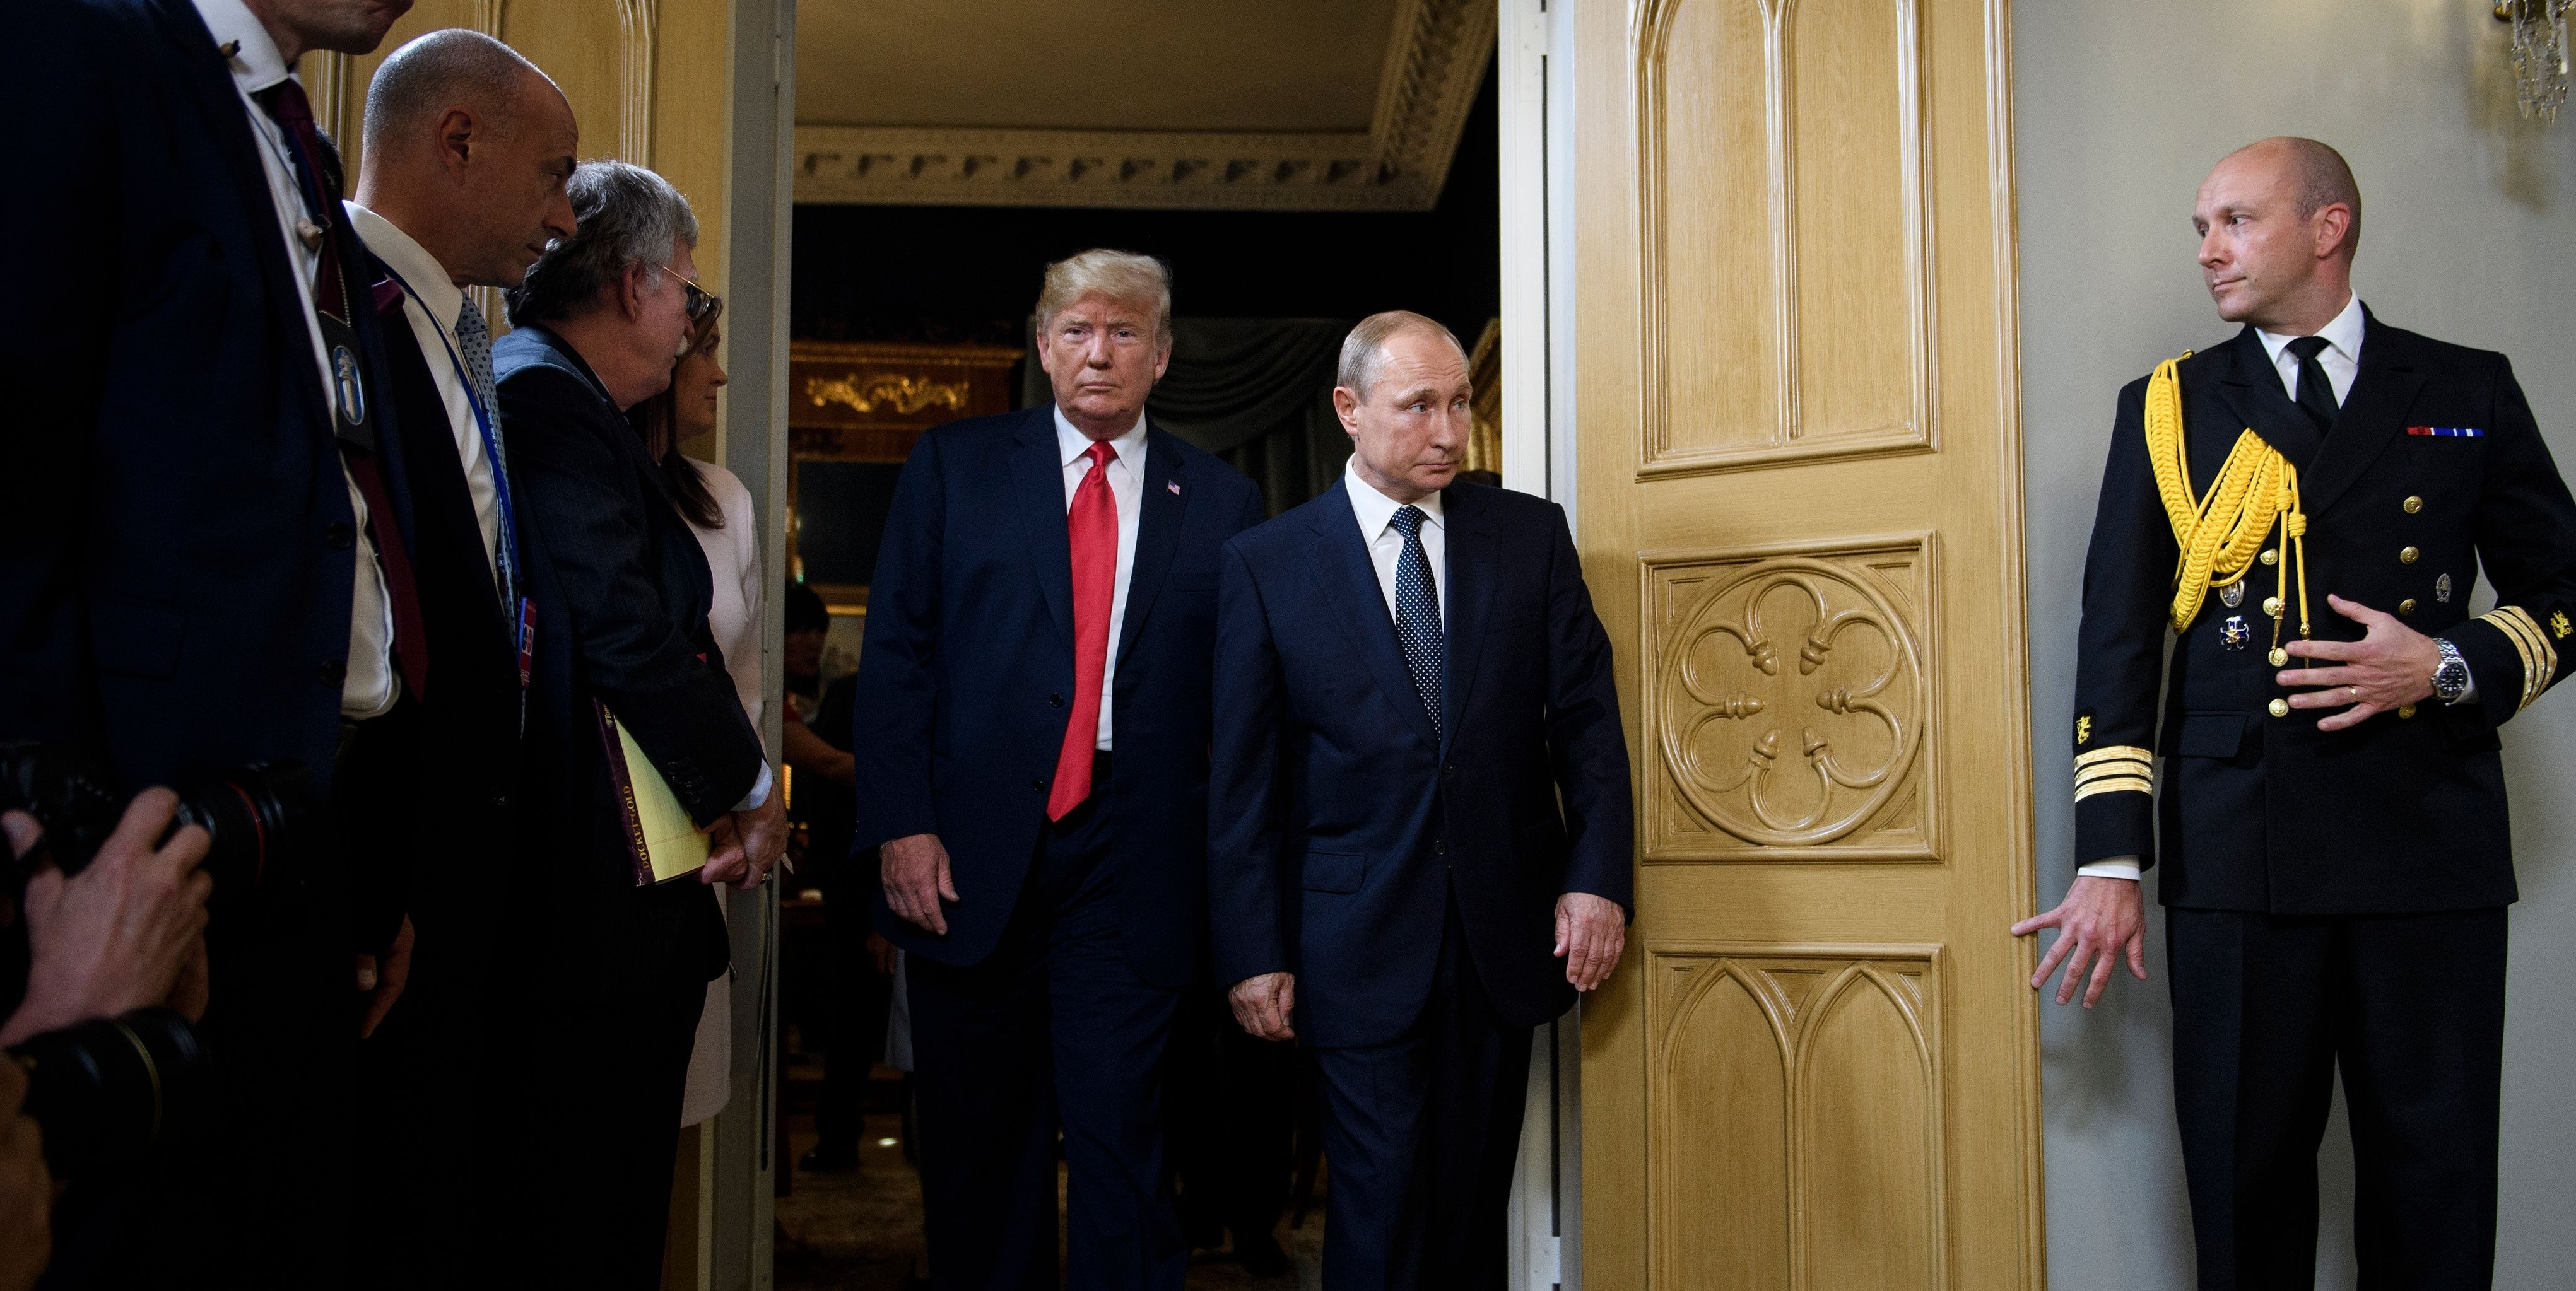 'Defended a Tyrant': McCain, GOP Lawmakers Rip Trump Over 'Tragic' Putin Summit